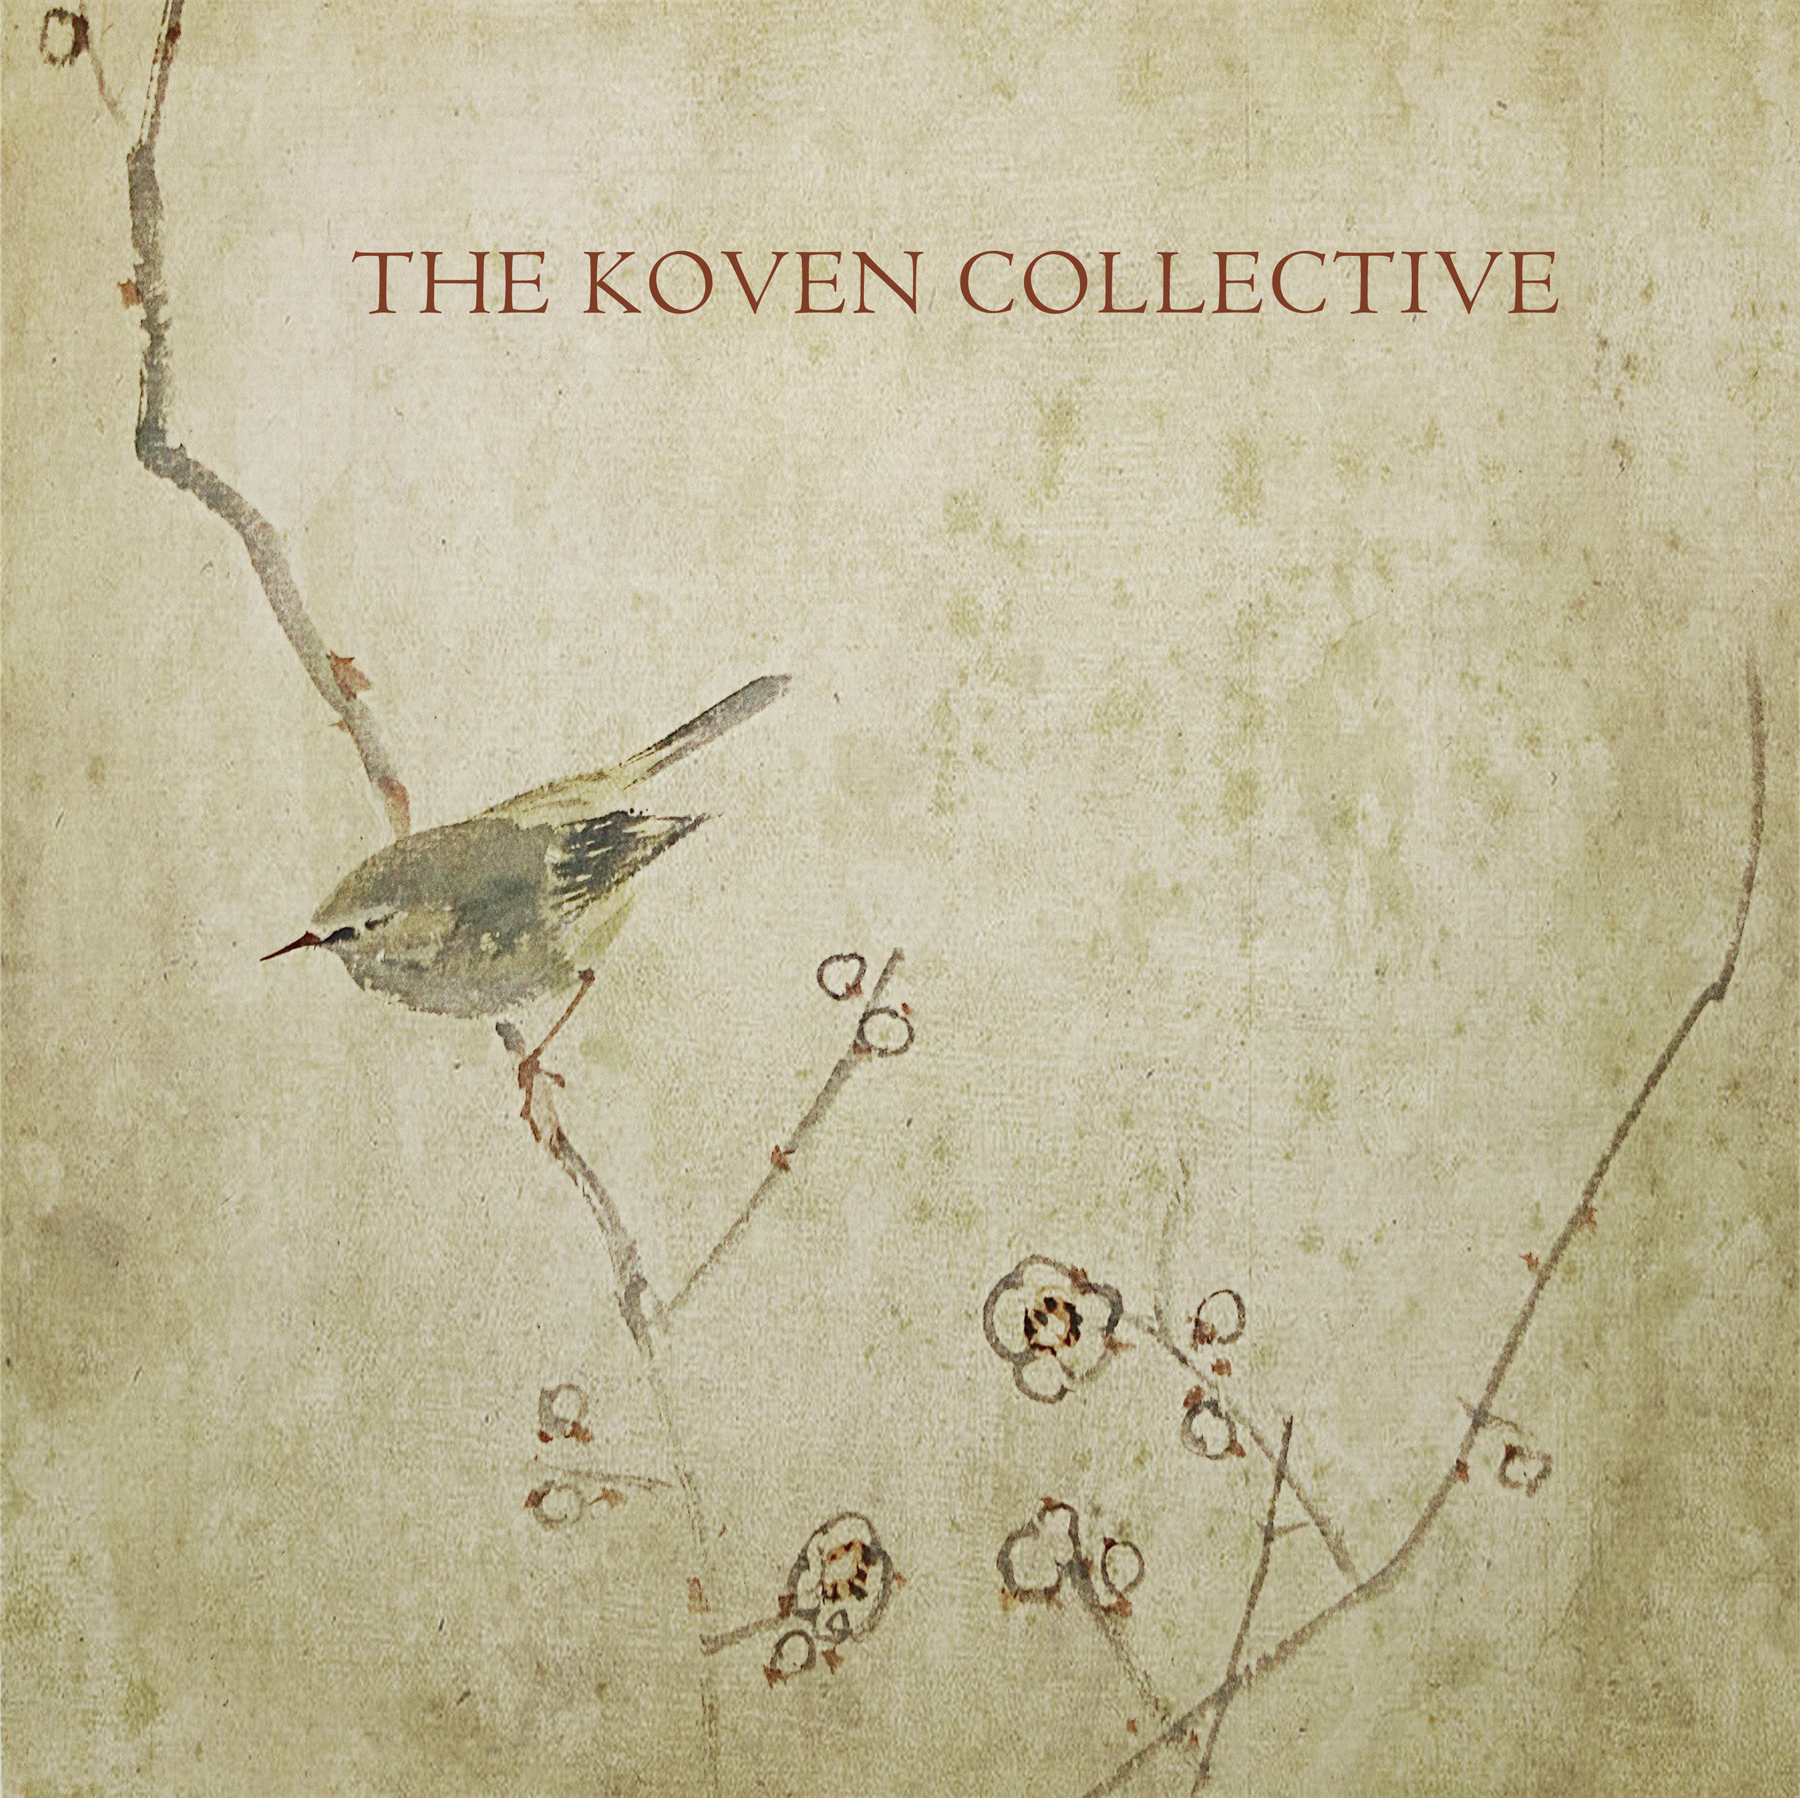 The Koven Collective - Album Cover